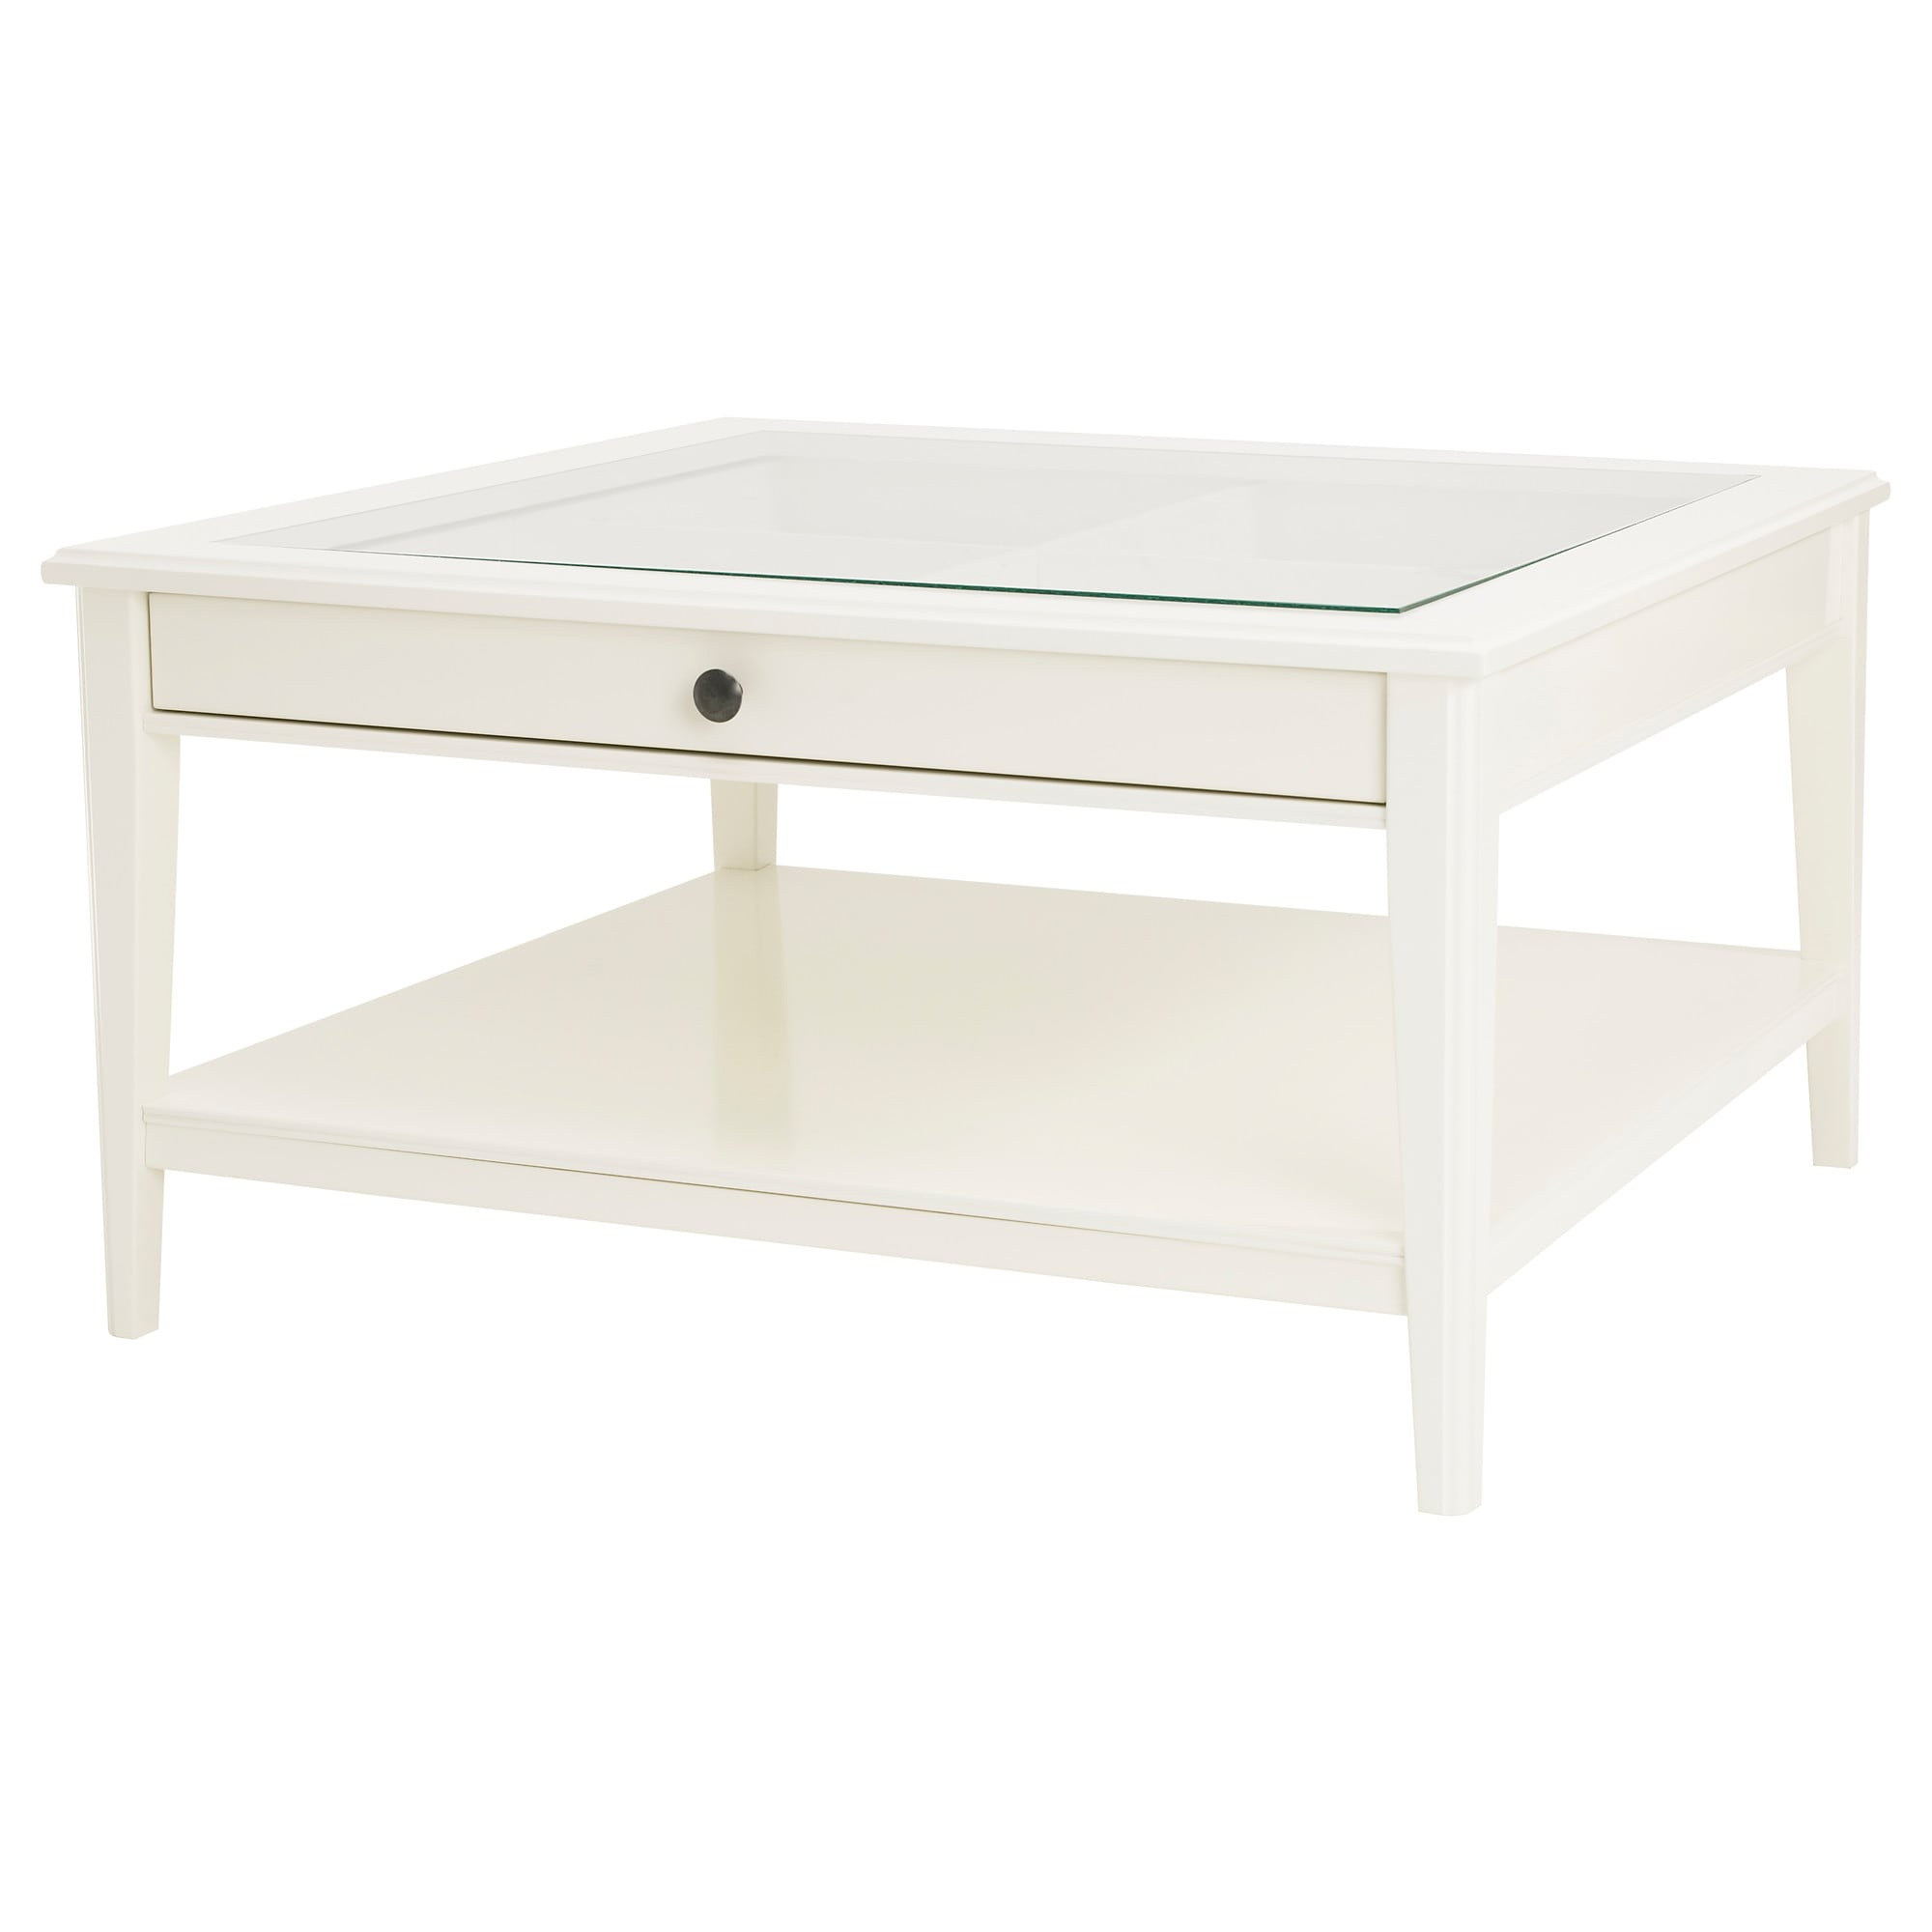 occasional tables tray storage window ikea liatorp coffee table white glass small accent practical space underneath the top home goods dining sets hollywood mirrored one door